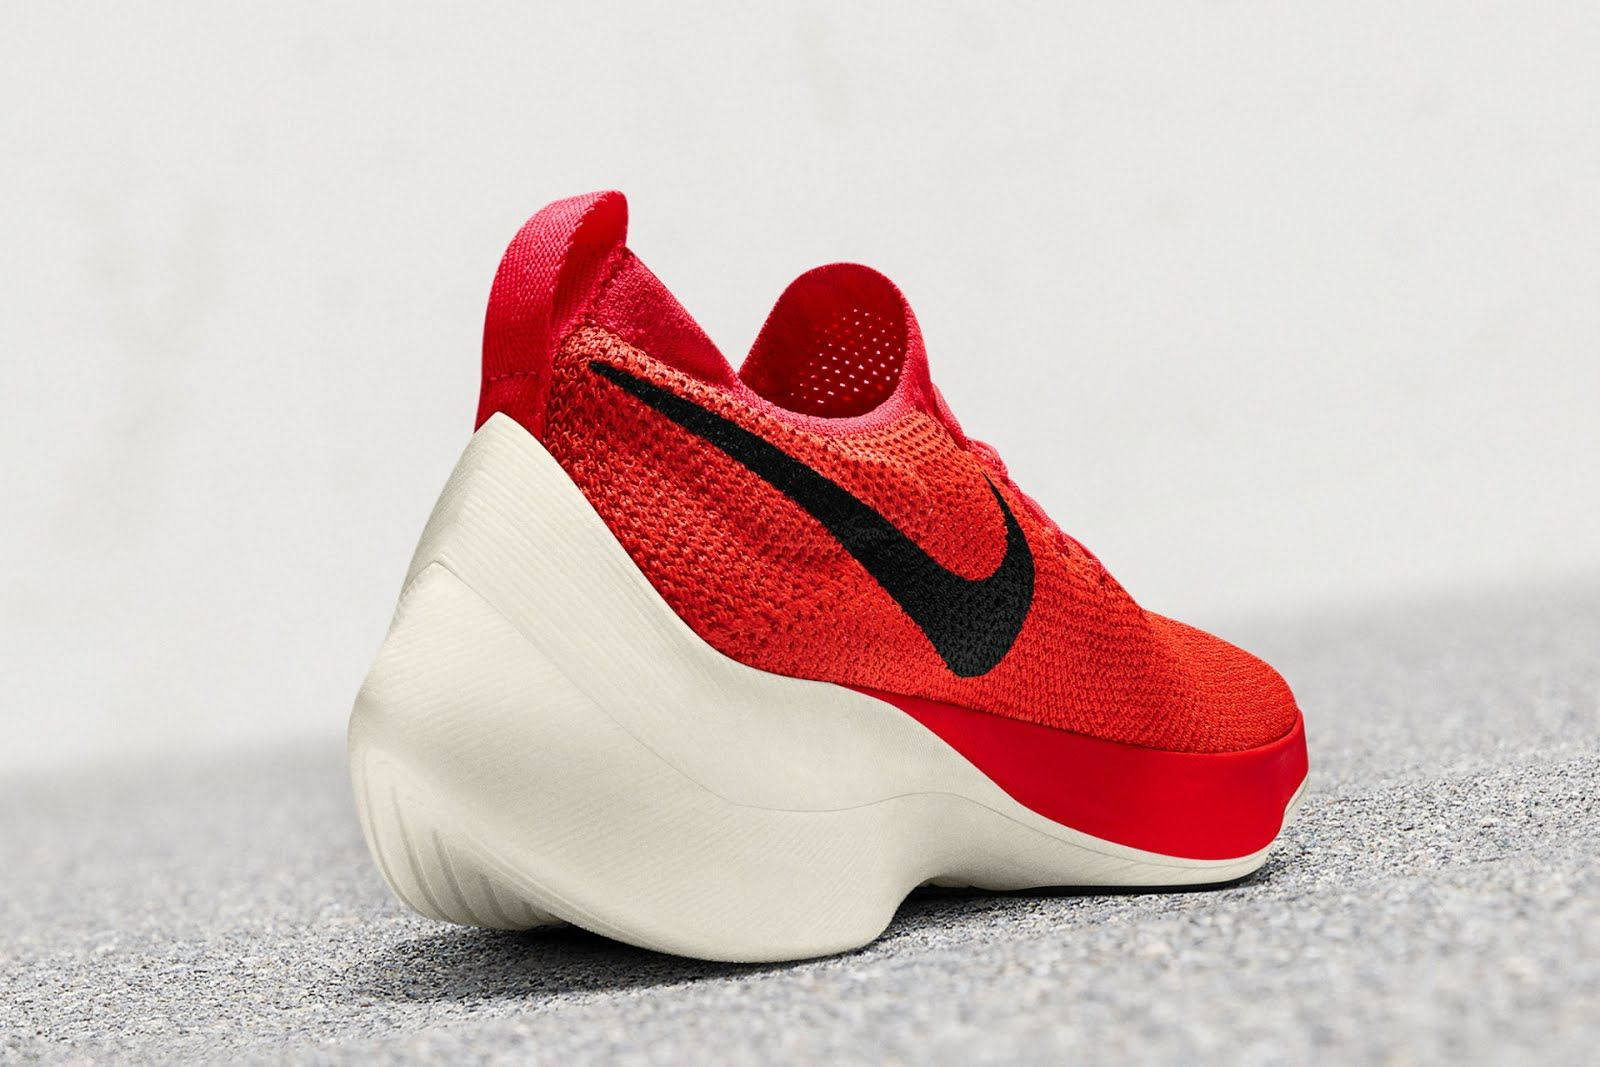 e576ddf1b4825 ... release date how to buy the red nike zoom vaporfly elite breaking 2  sneakers that eliud